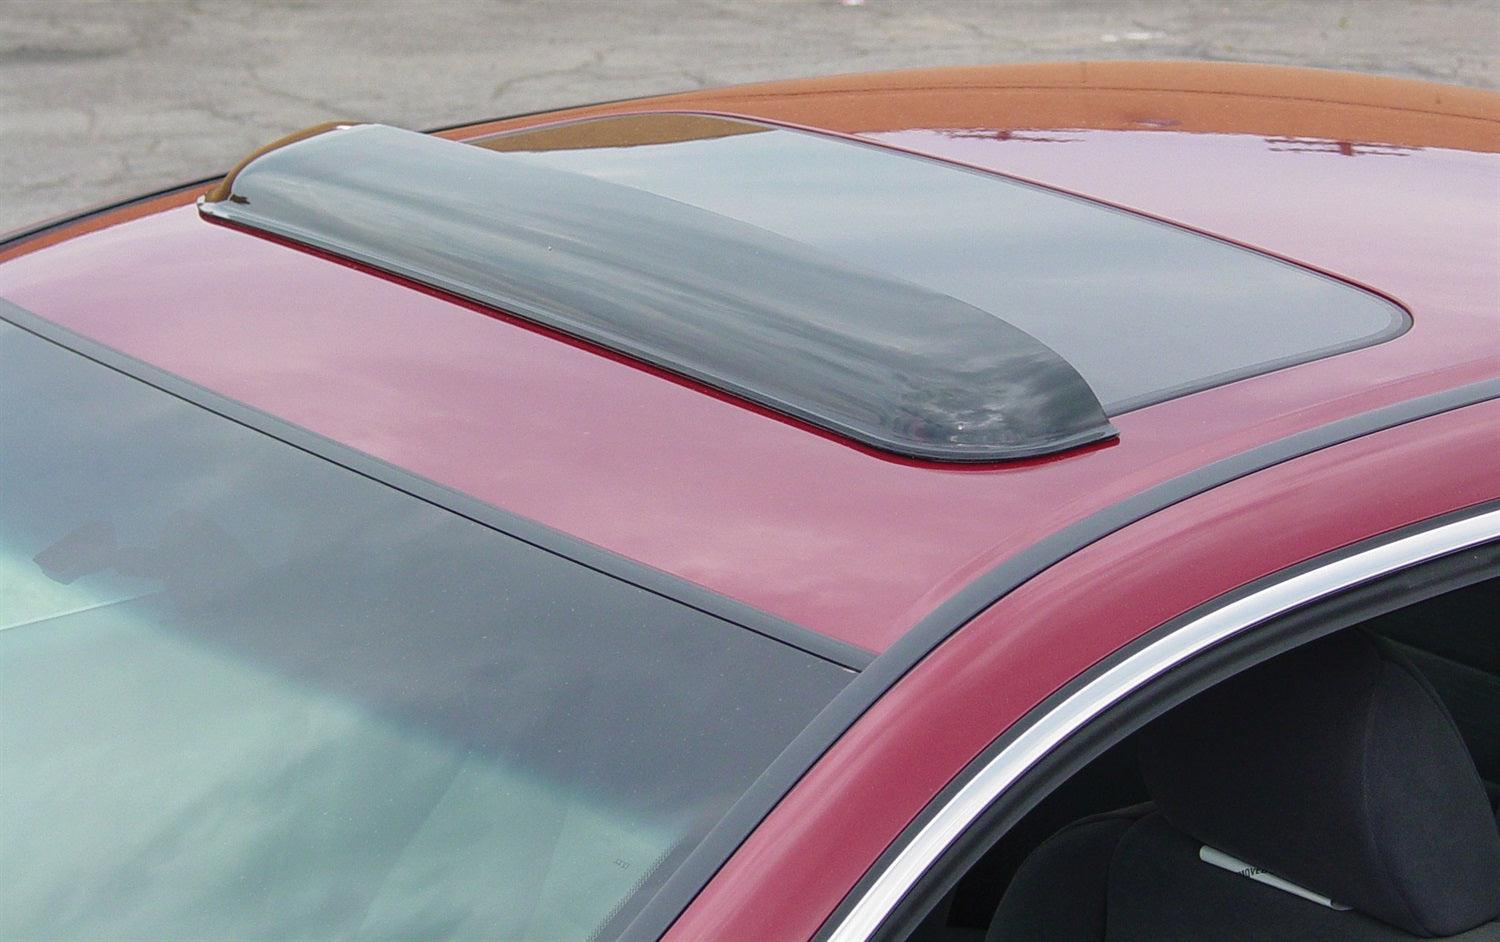 1994 Honda Prelude Sunroof Wind Deflector